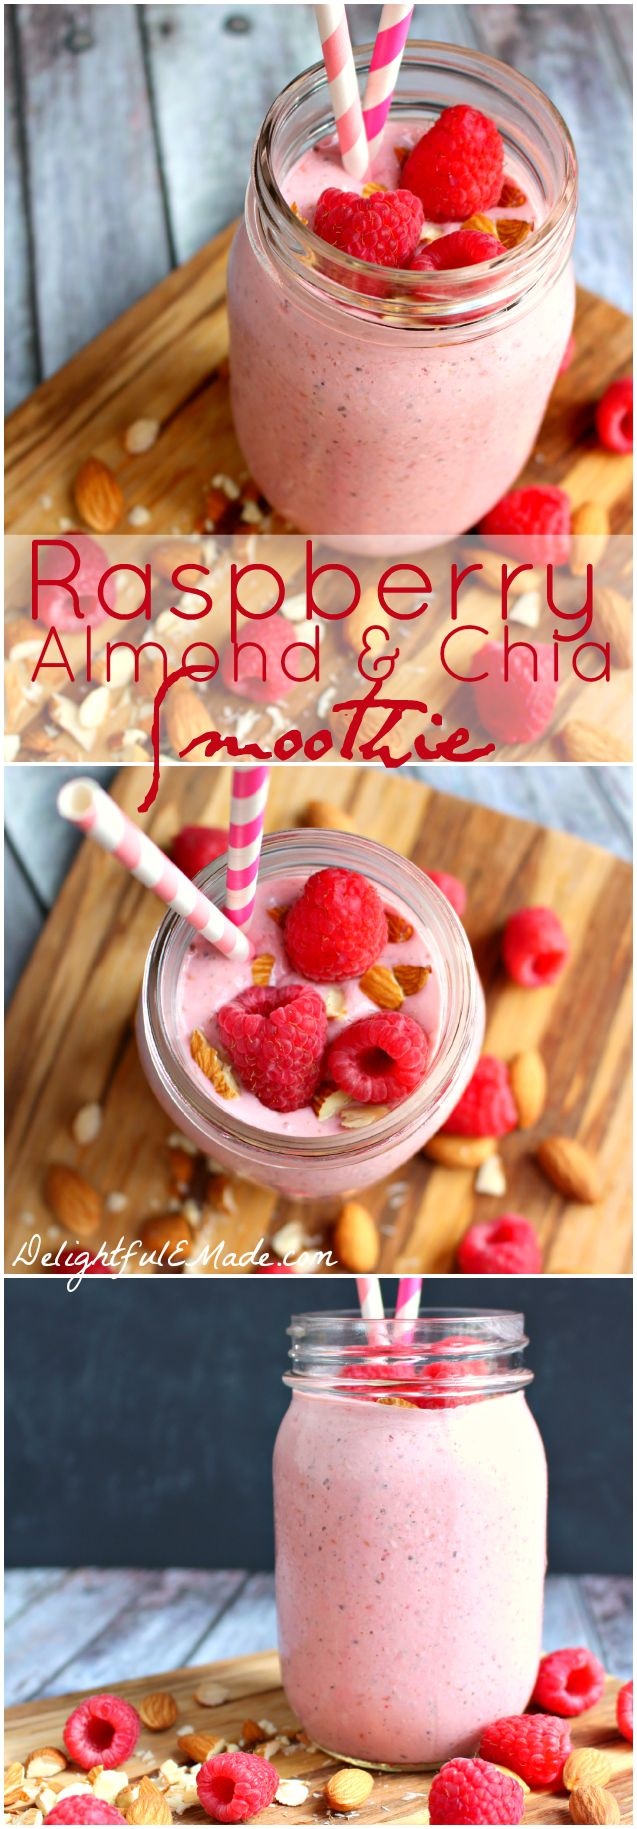 Raspberry Almond Chia Smoothie – Cooking for a Cure